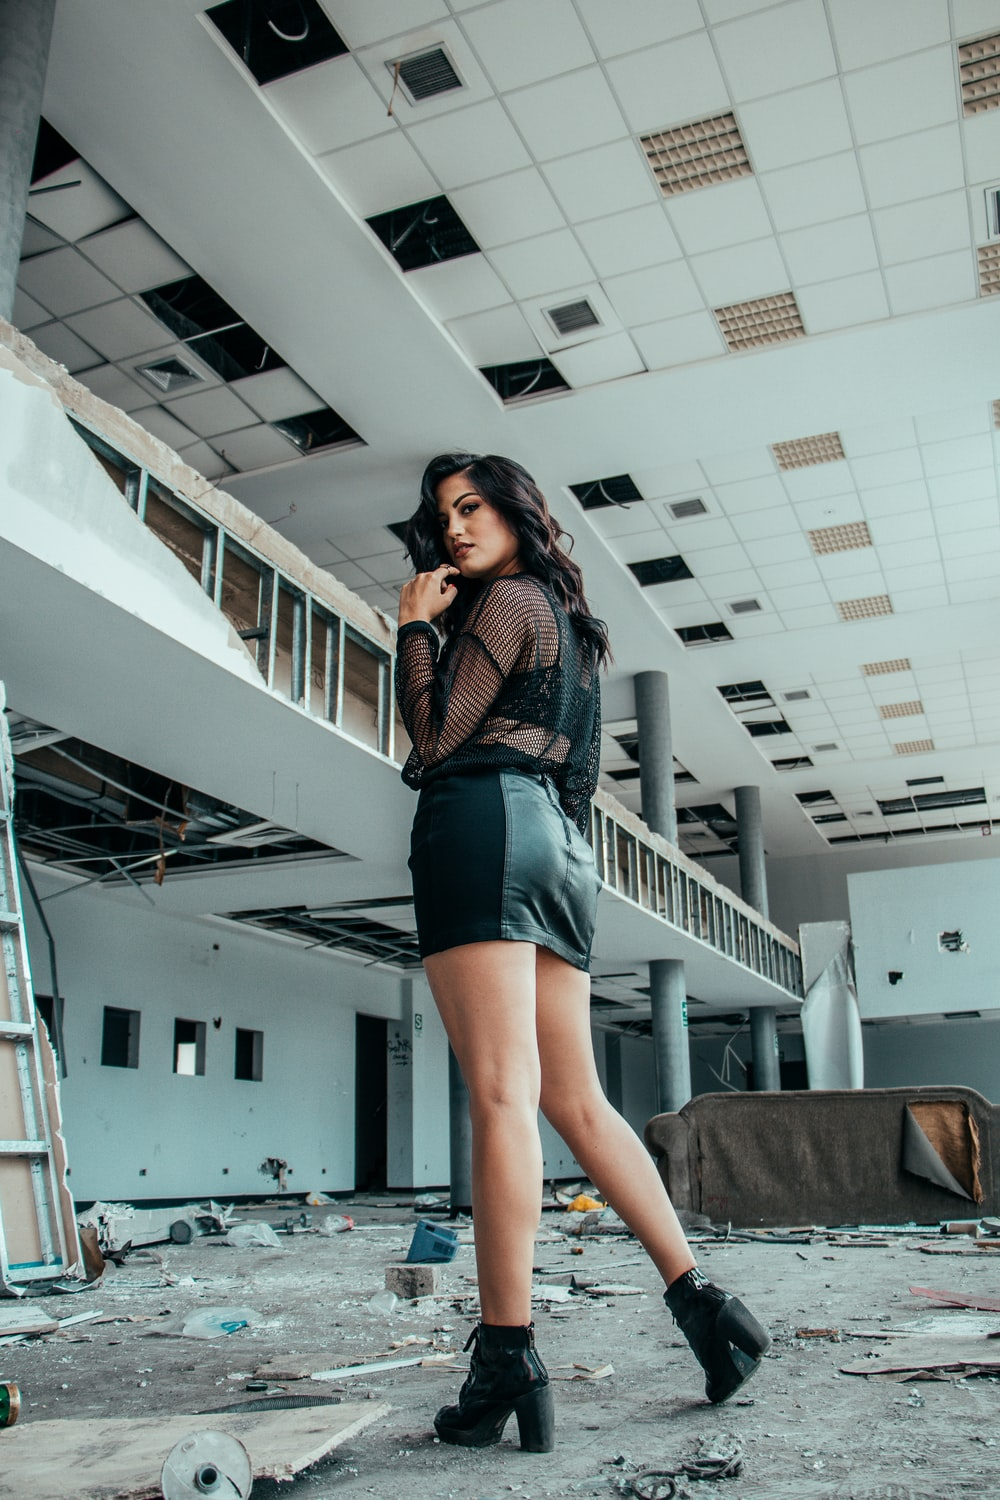 woman in black long-sleeved top and mini skirt standing on empty commercial building during daytime